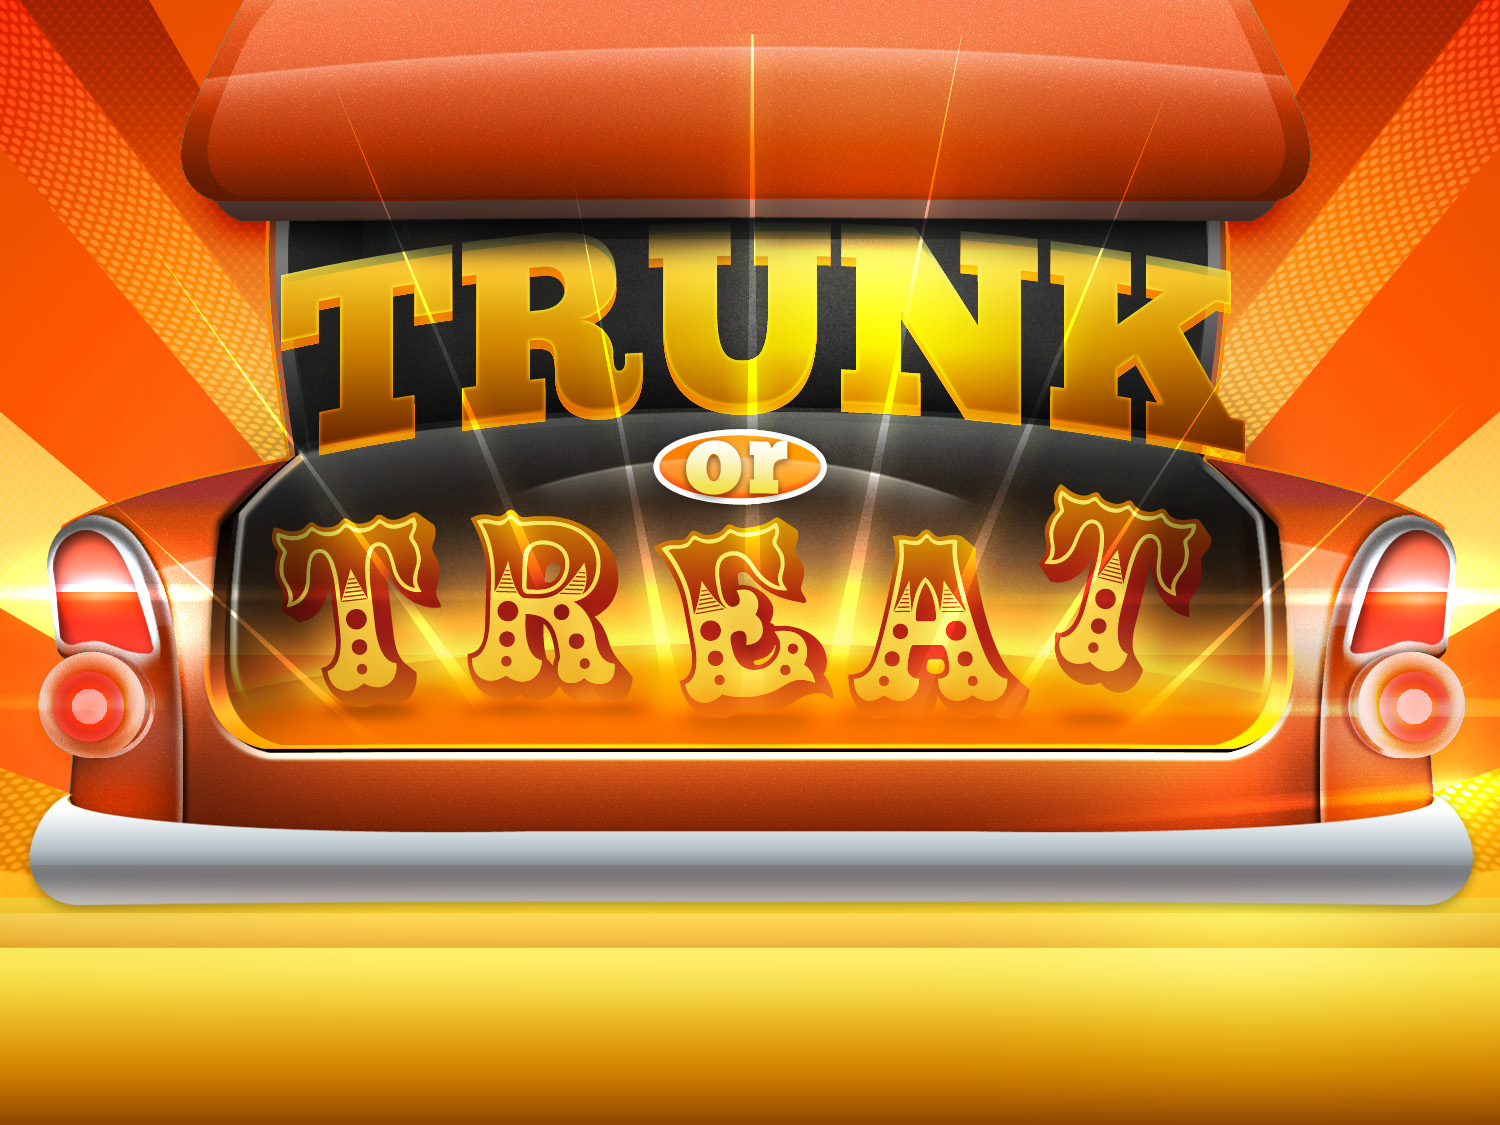 Trunk or treat t nv